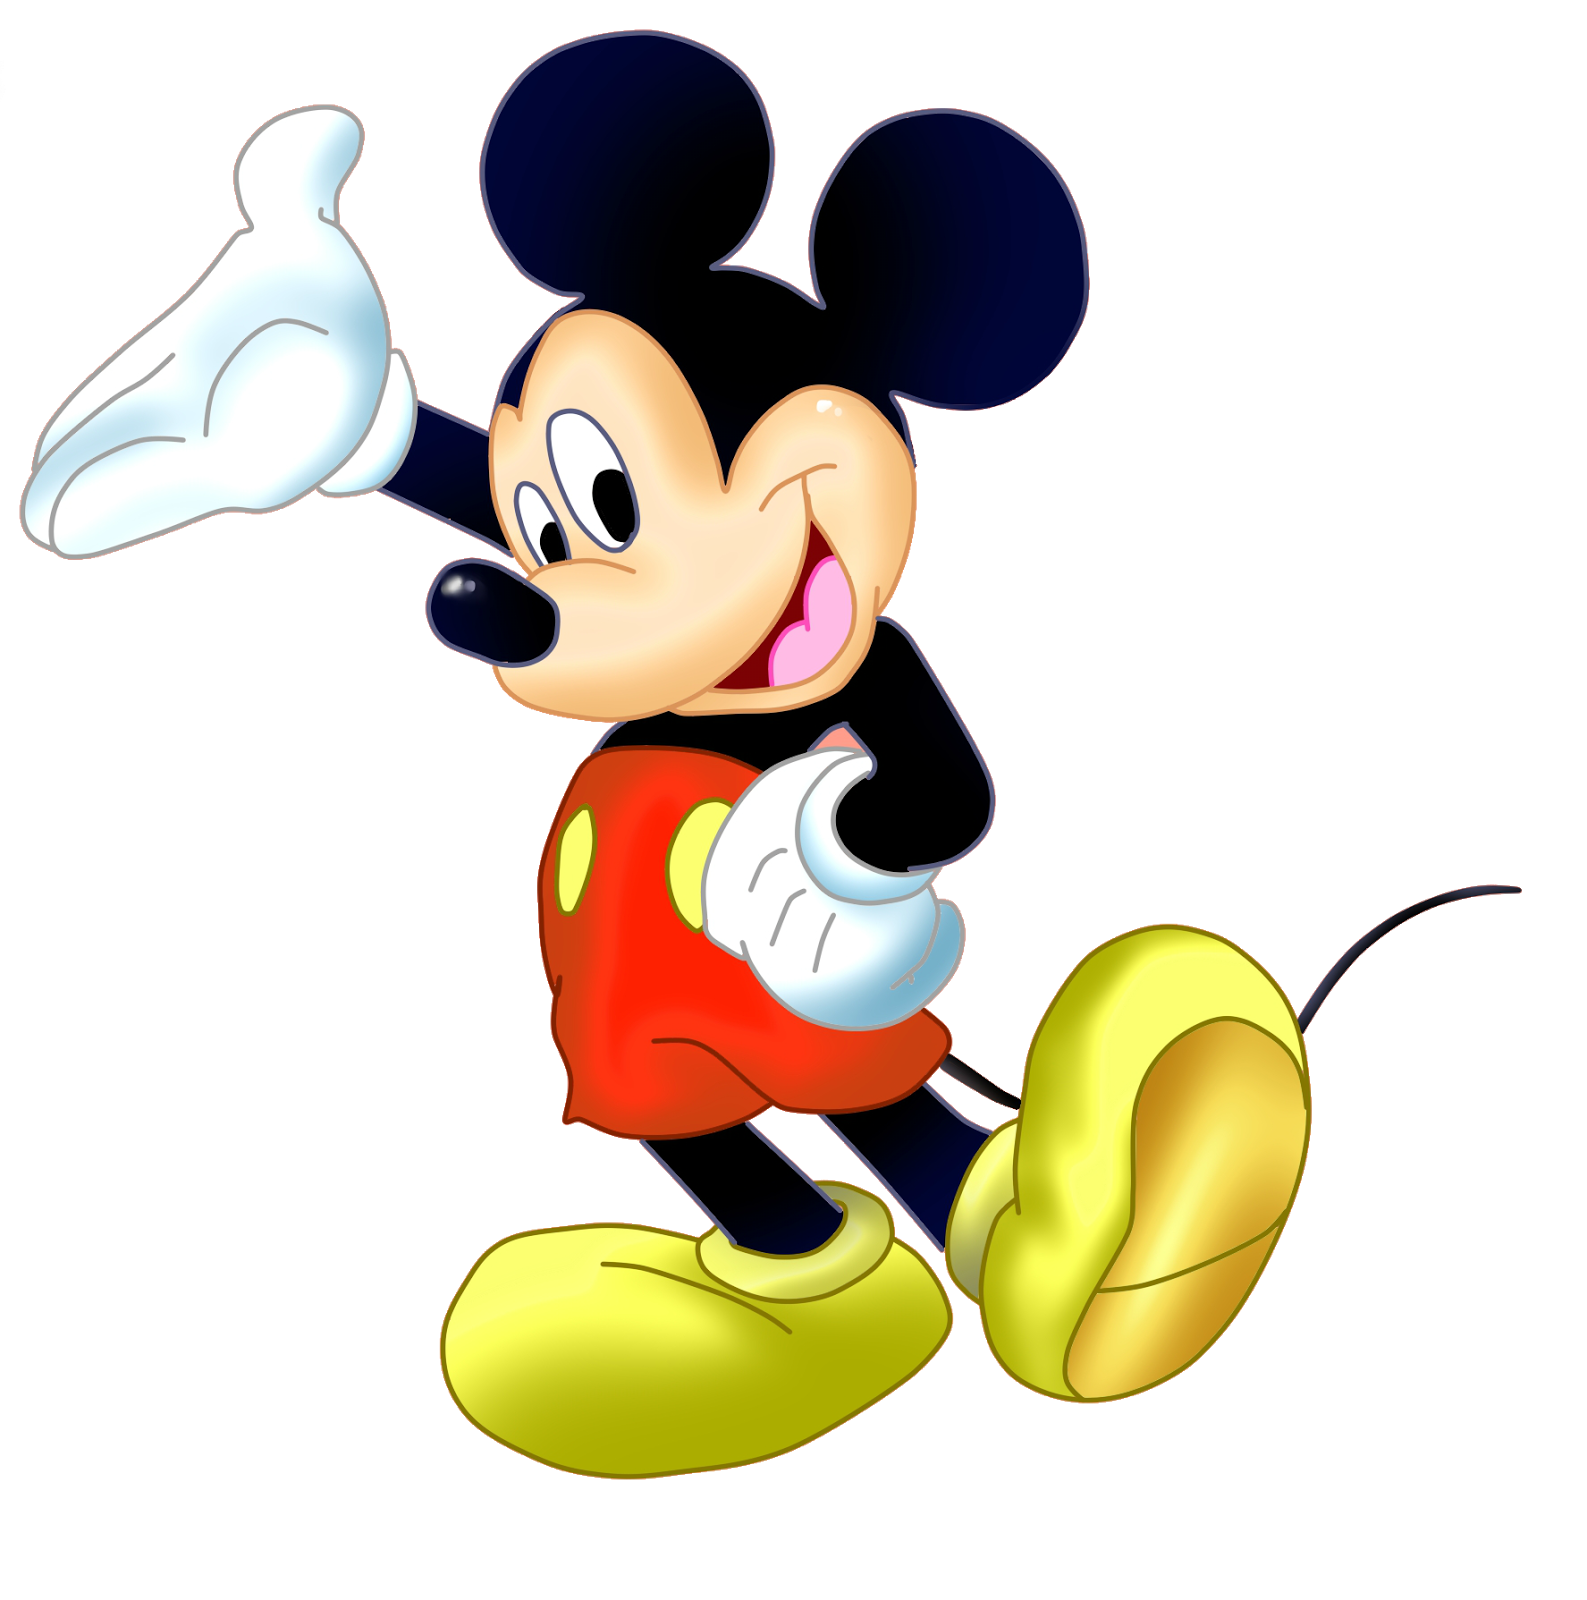 Mickey mouse characters png. Image result for cake